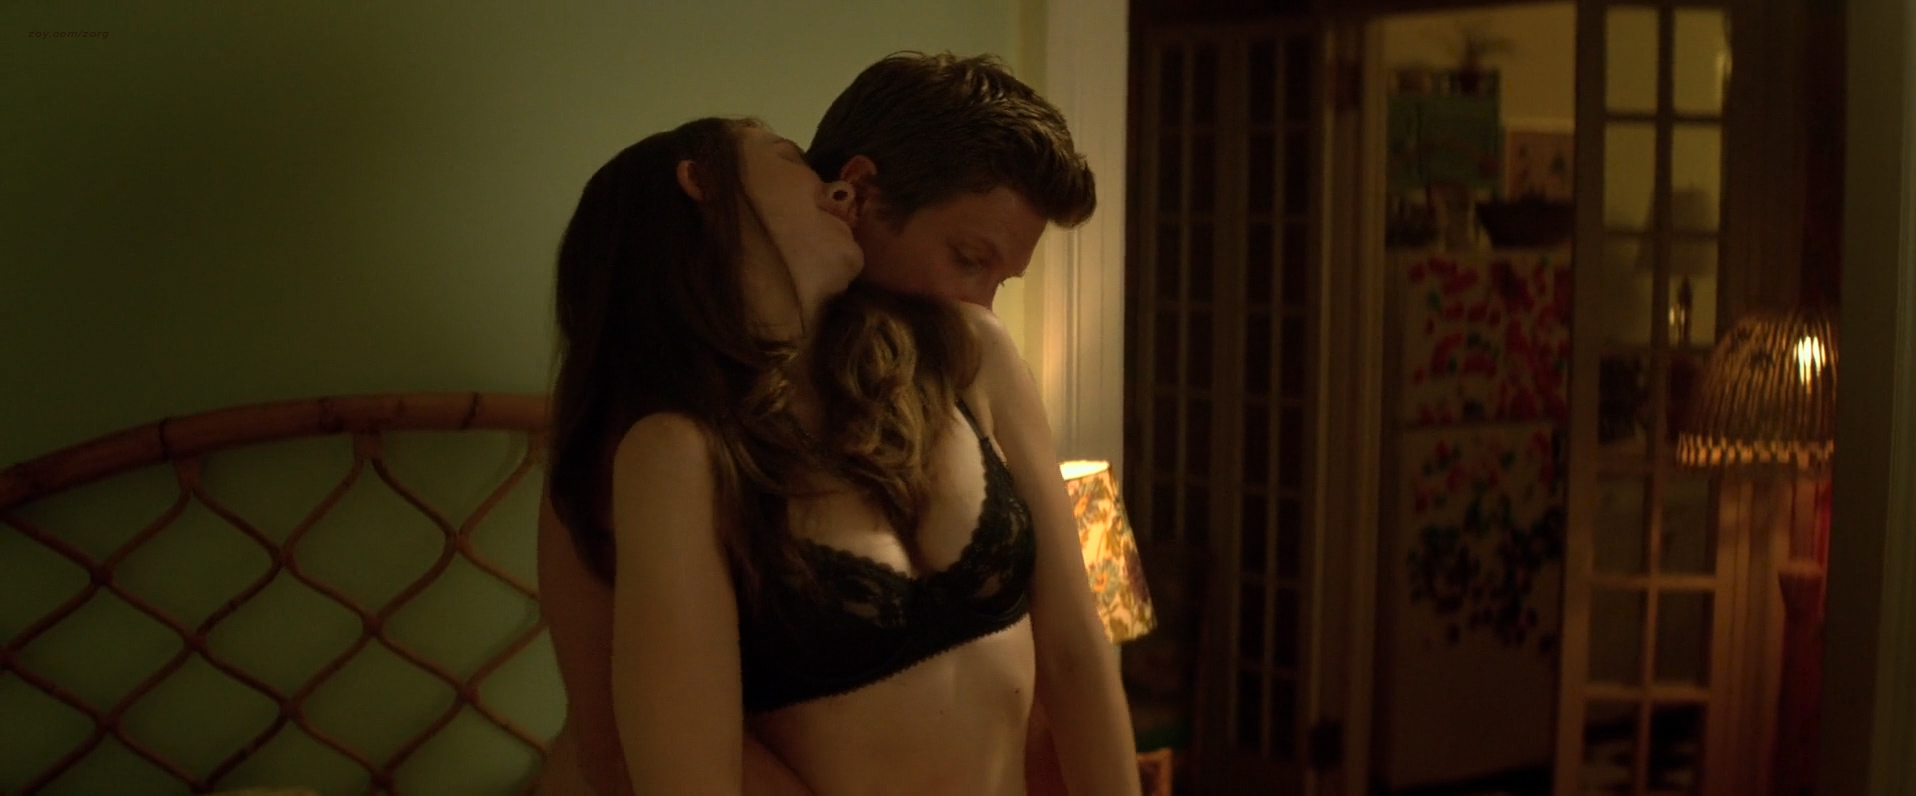 Alison Brie hot lingerie and butt in thong Amanda Peet hot - Sleeping with Other People (2015) HD 1080p (1)